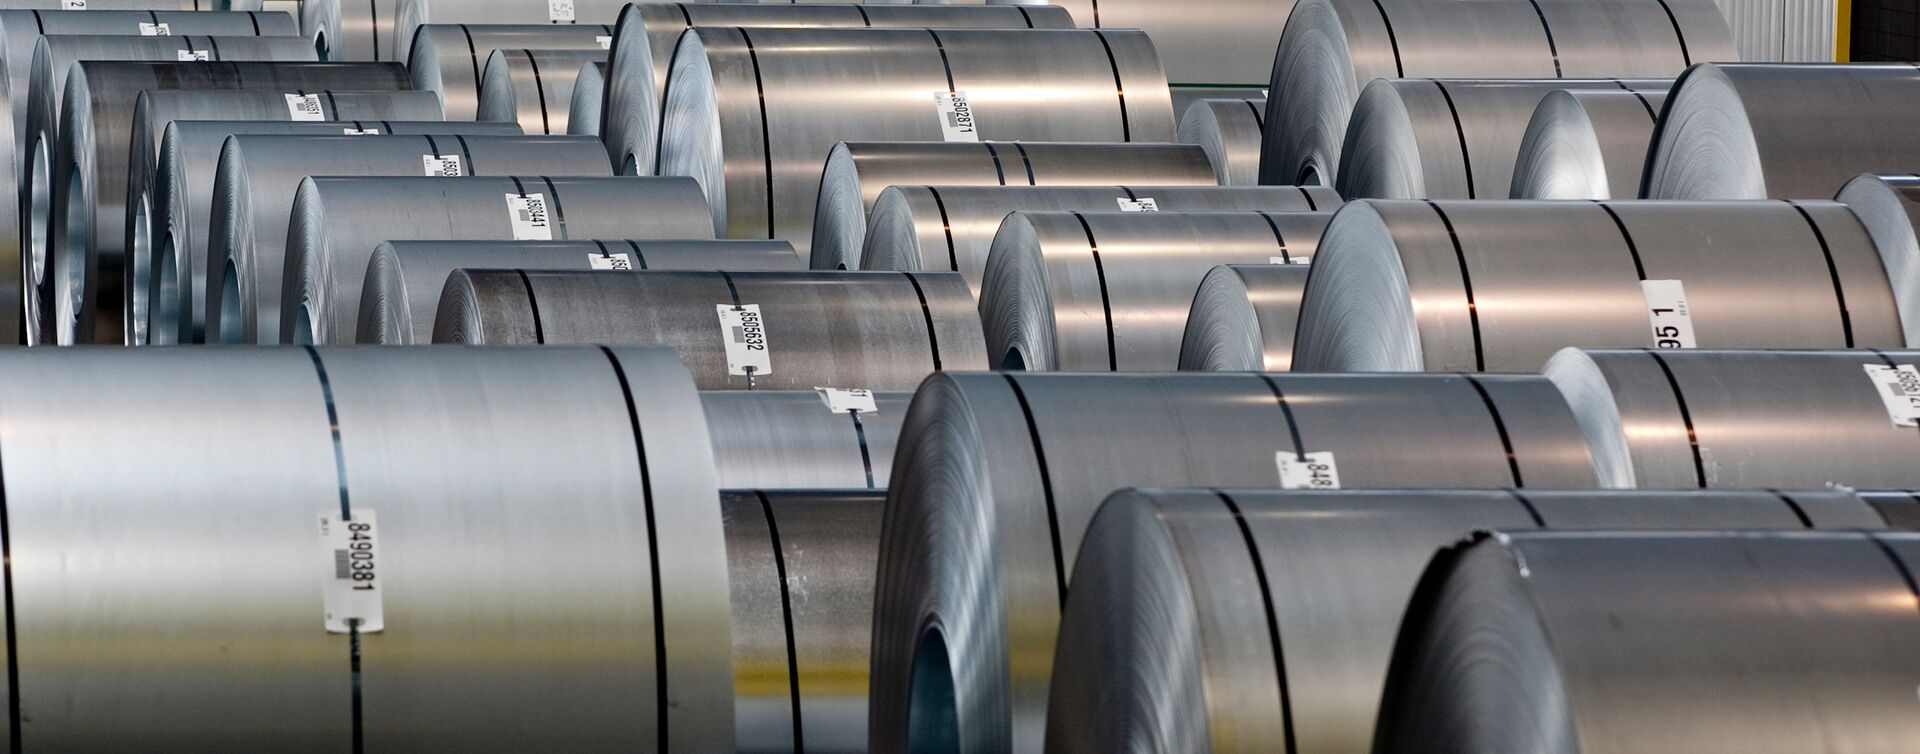 Tata Steel in Europe Hot Rolled Coils on-site